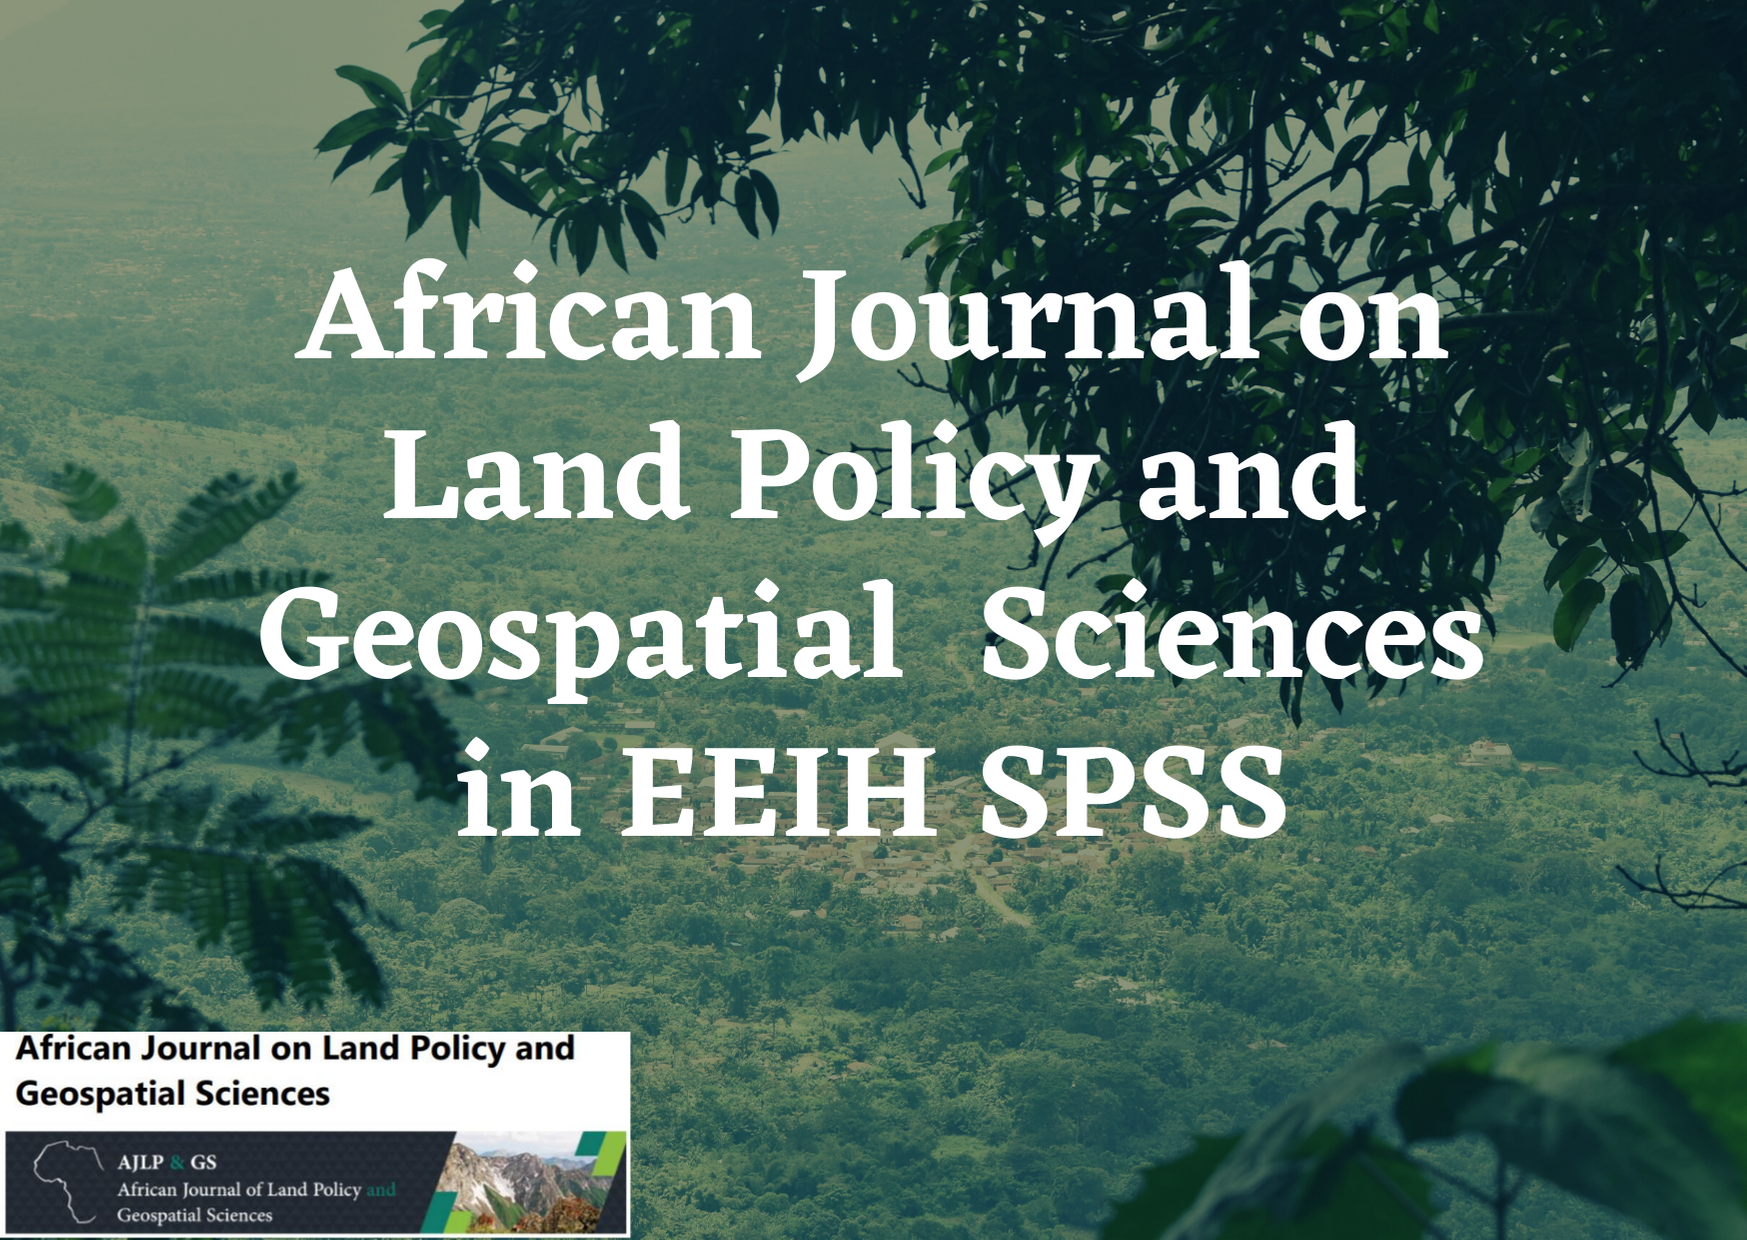 The African Journal on Land Policy and Geospatial Sciences Listed in ERIH PLUS